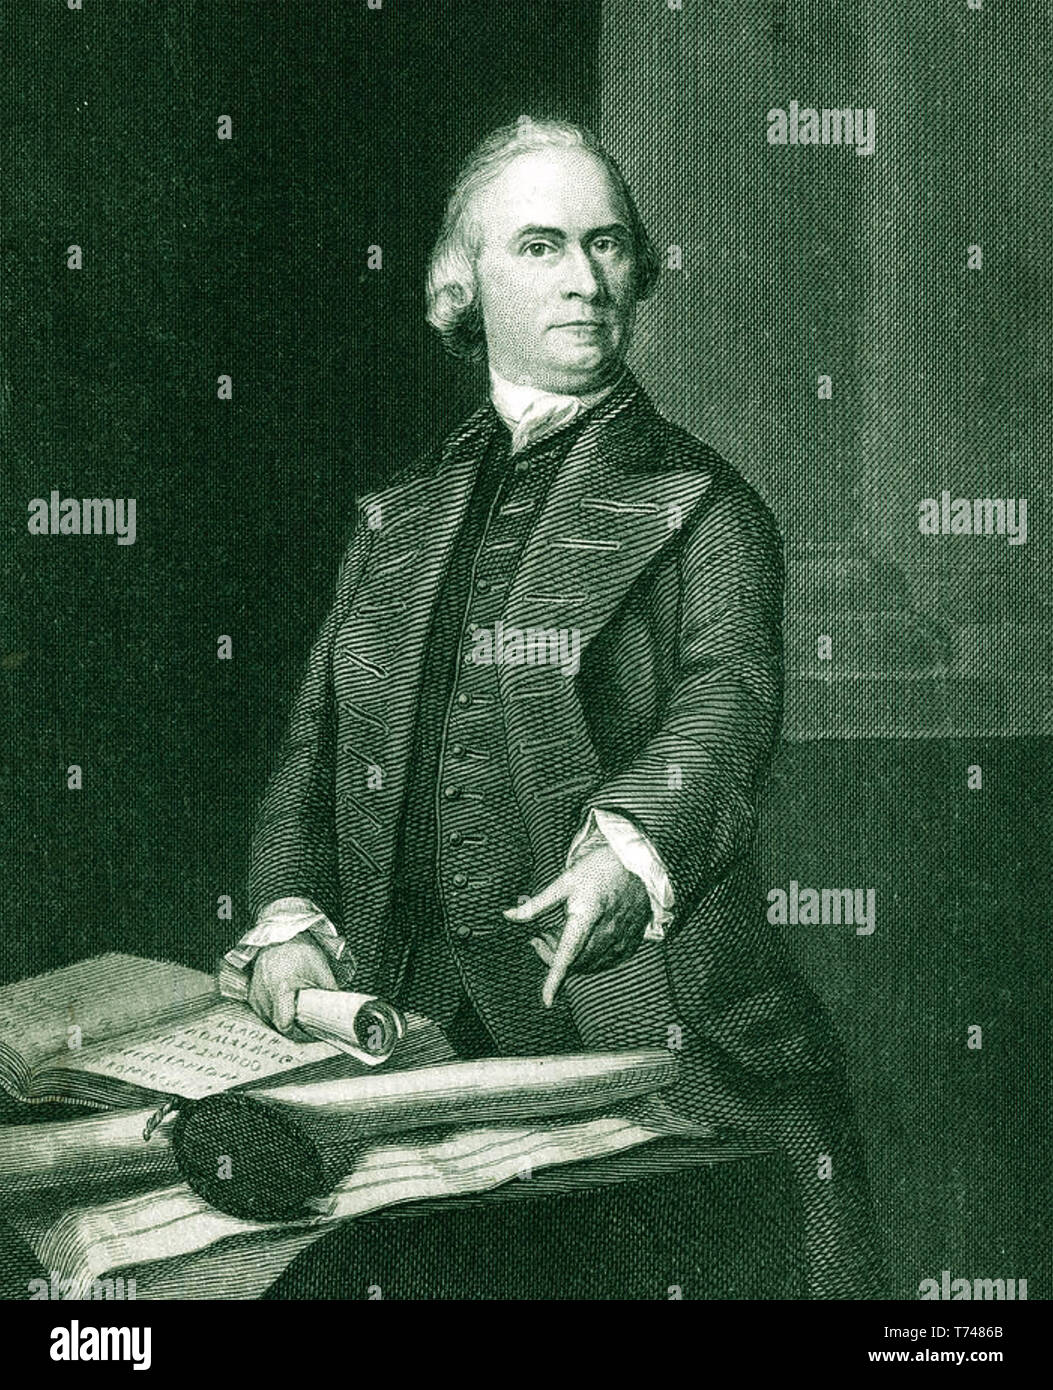 SAMUEL ADAMS (1722-1803) American statesman and Founding Father shown pointing at at the Massachusetts Charter in an engraving based on a portrait about 1772 - Stock Image